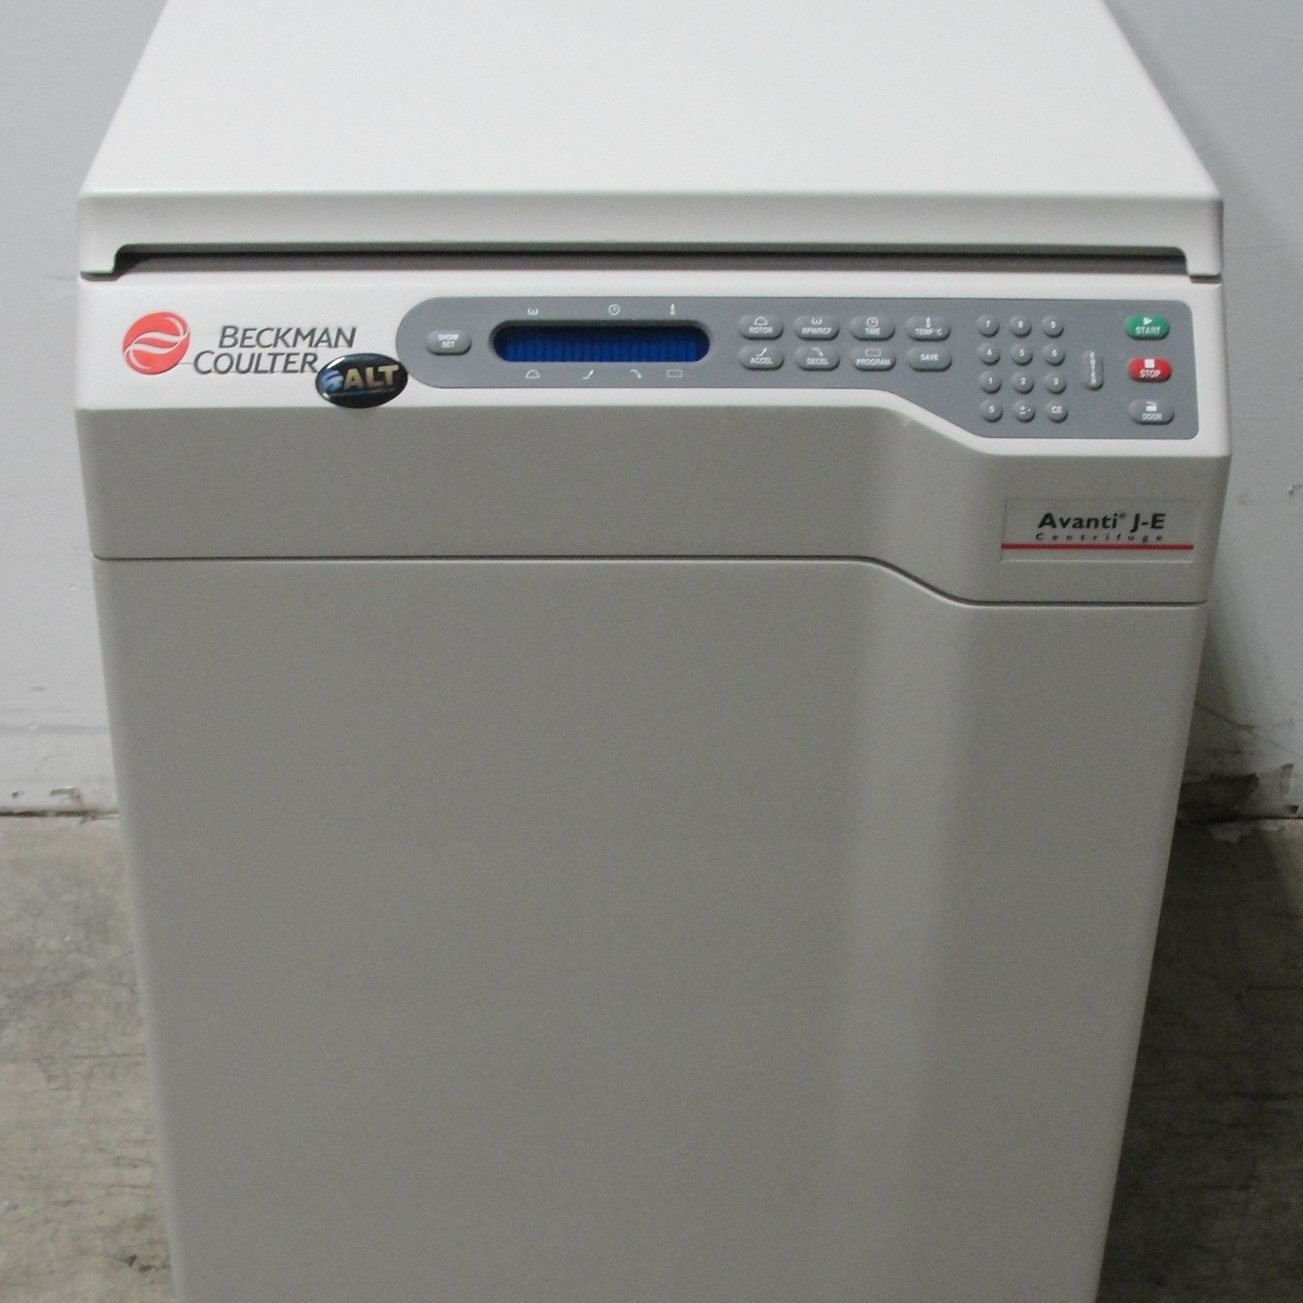 Beckman Coulter Avanti J-E High-Performance Centrifuge Image